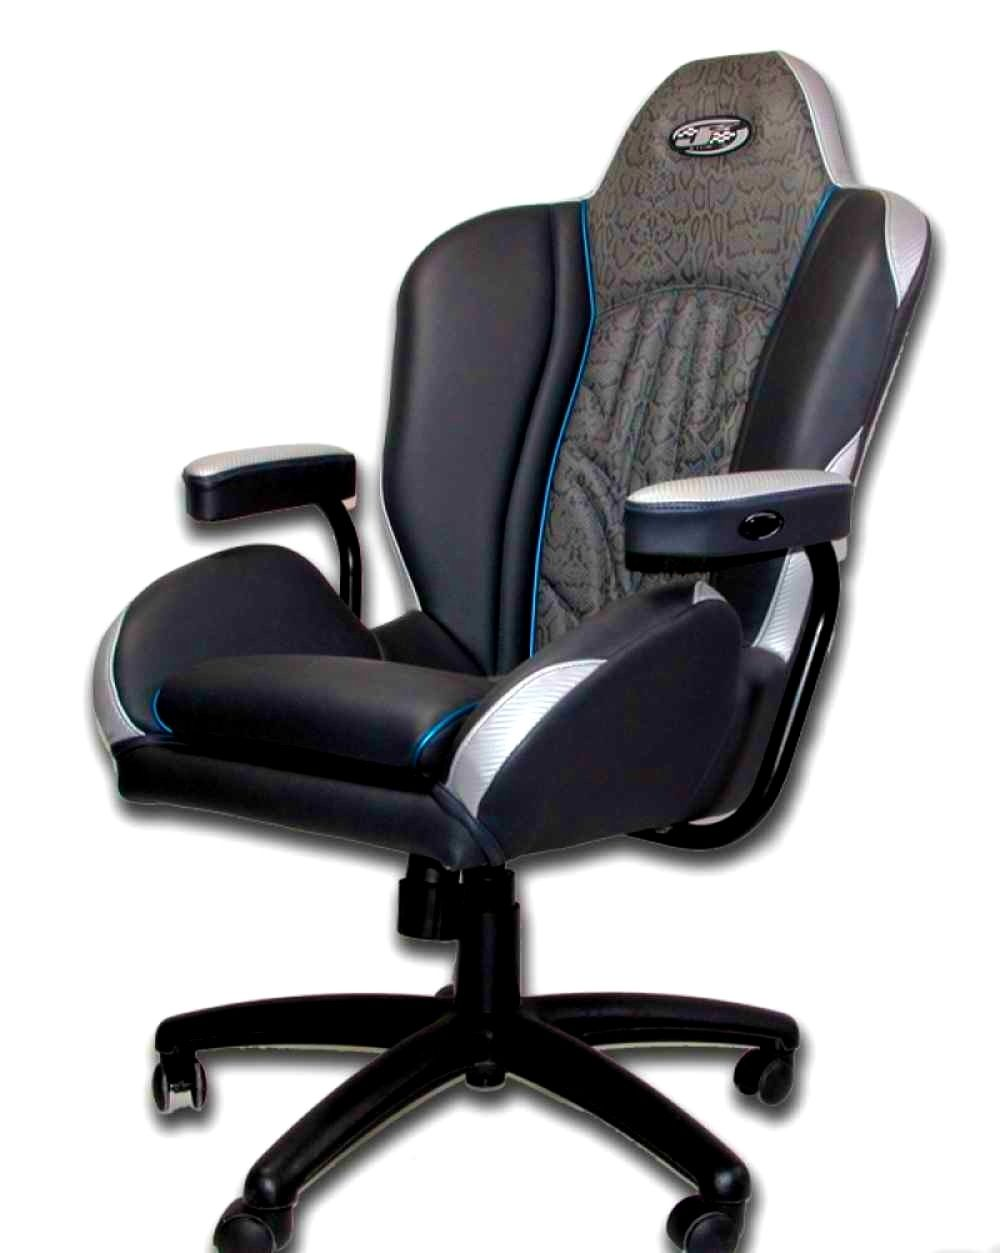 most comfortable desk chairs cosco wood folding chair office 2013 http productcreationlabs com